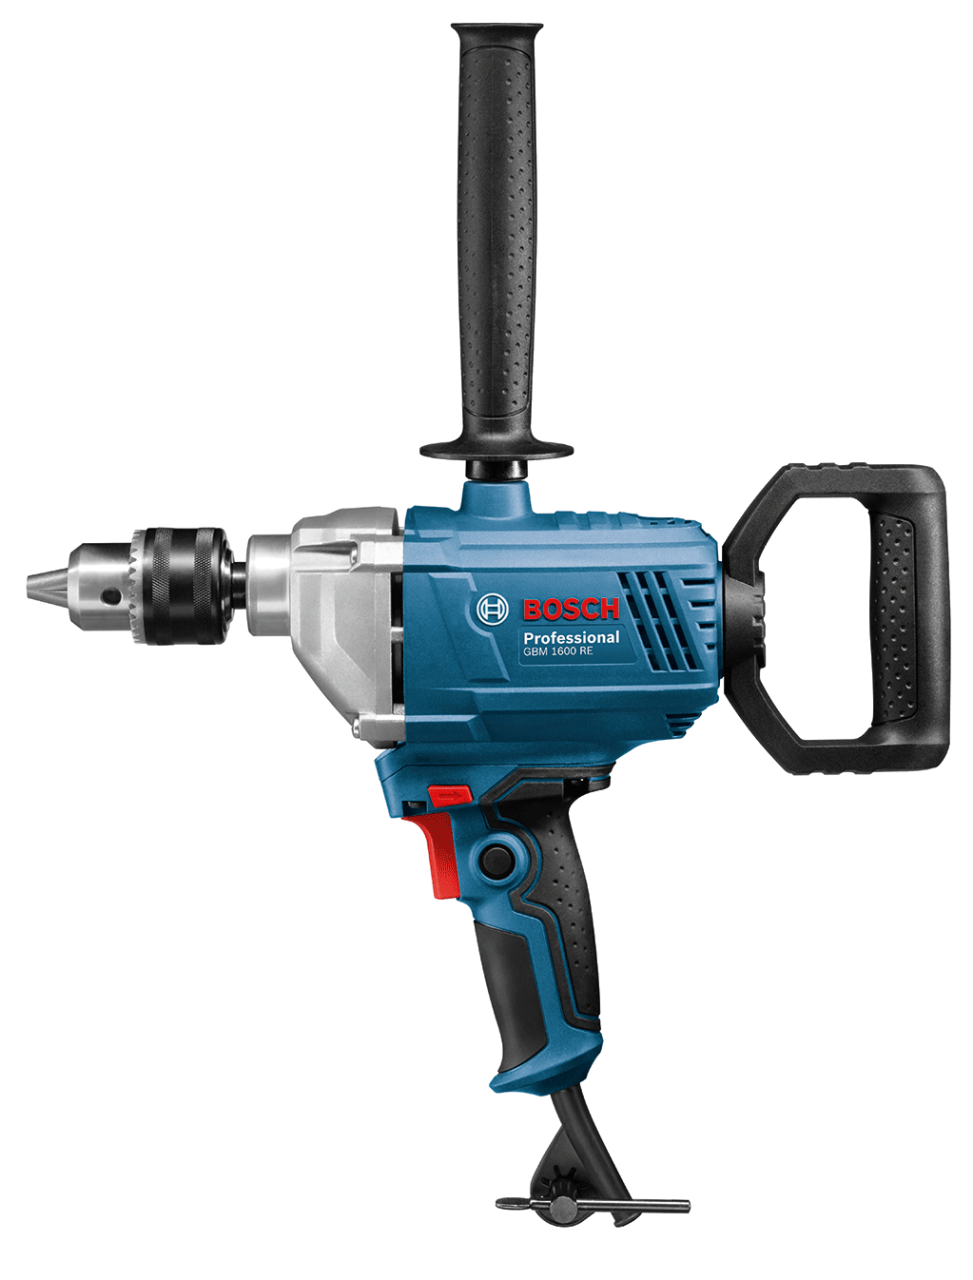 Bosch Professional GBM 1600 RE Impact Drill